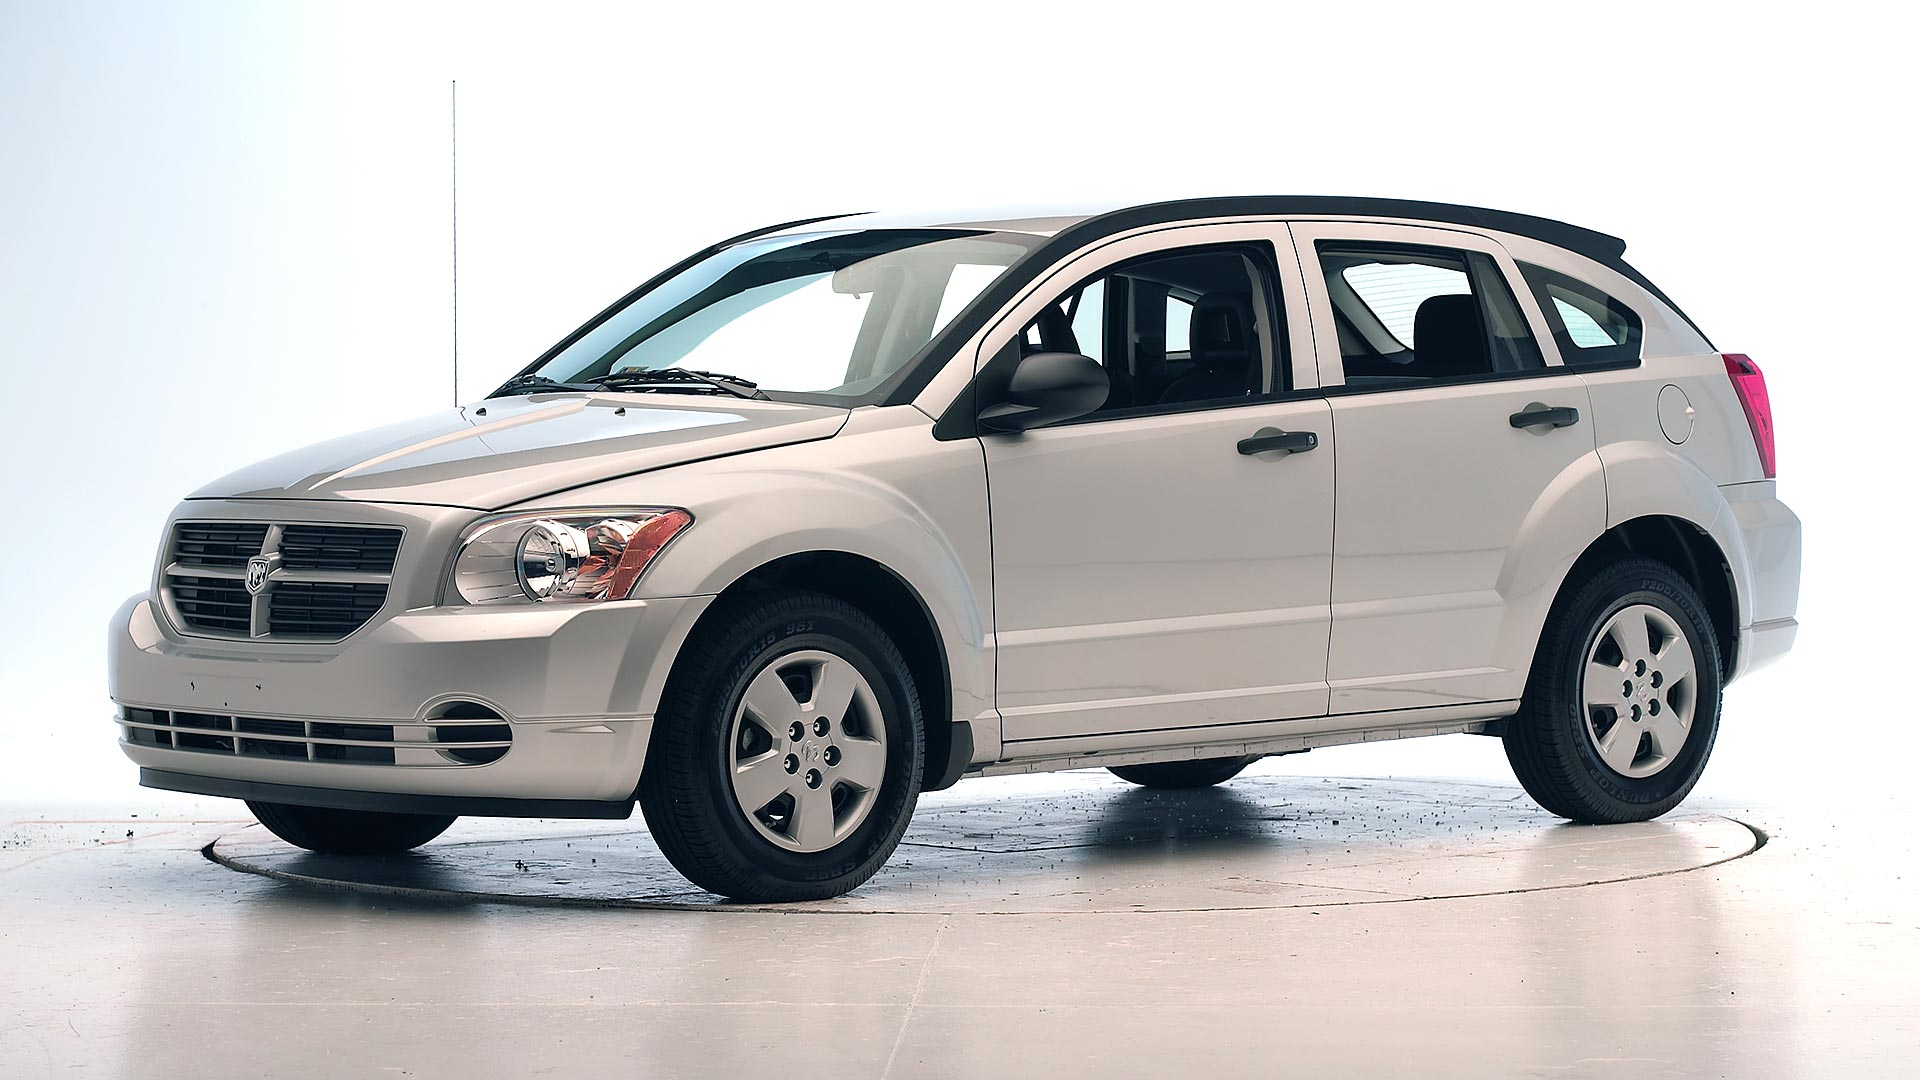 2010 Dodge Caliber 4-door wagon